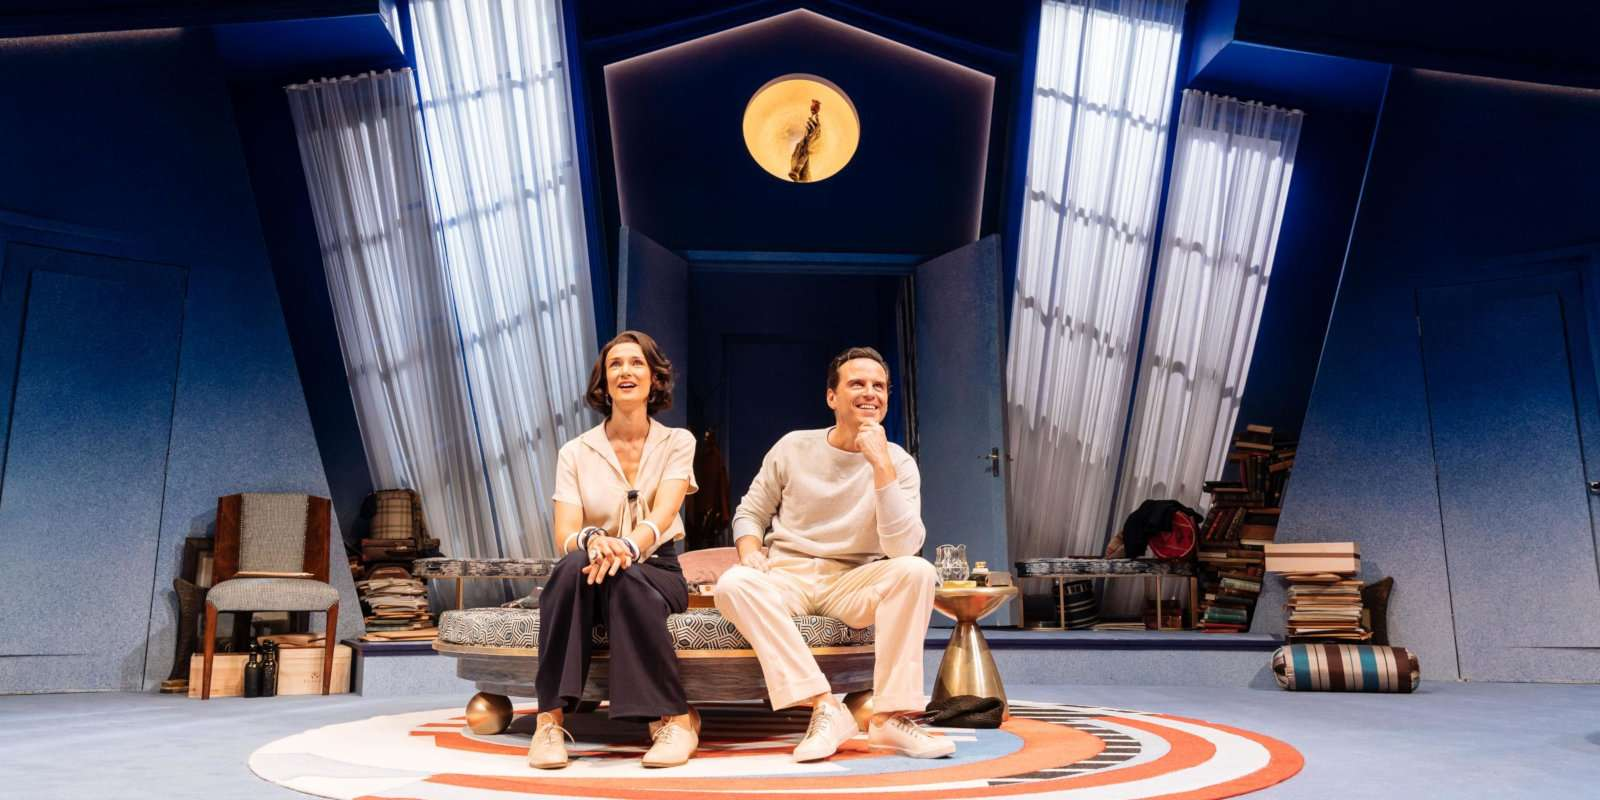 Noel Coward's play Present Laughter has been re imagined with a bisexual bent in this version showing in London